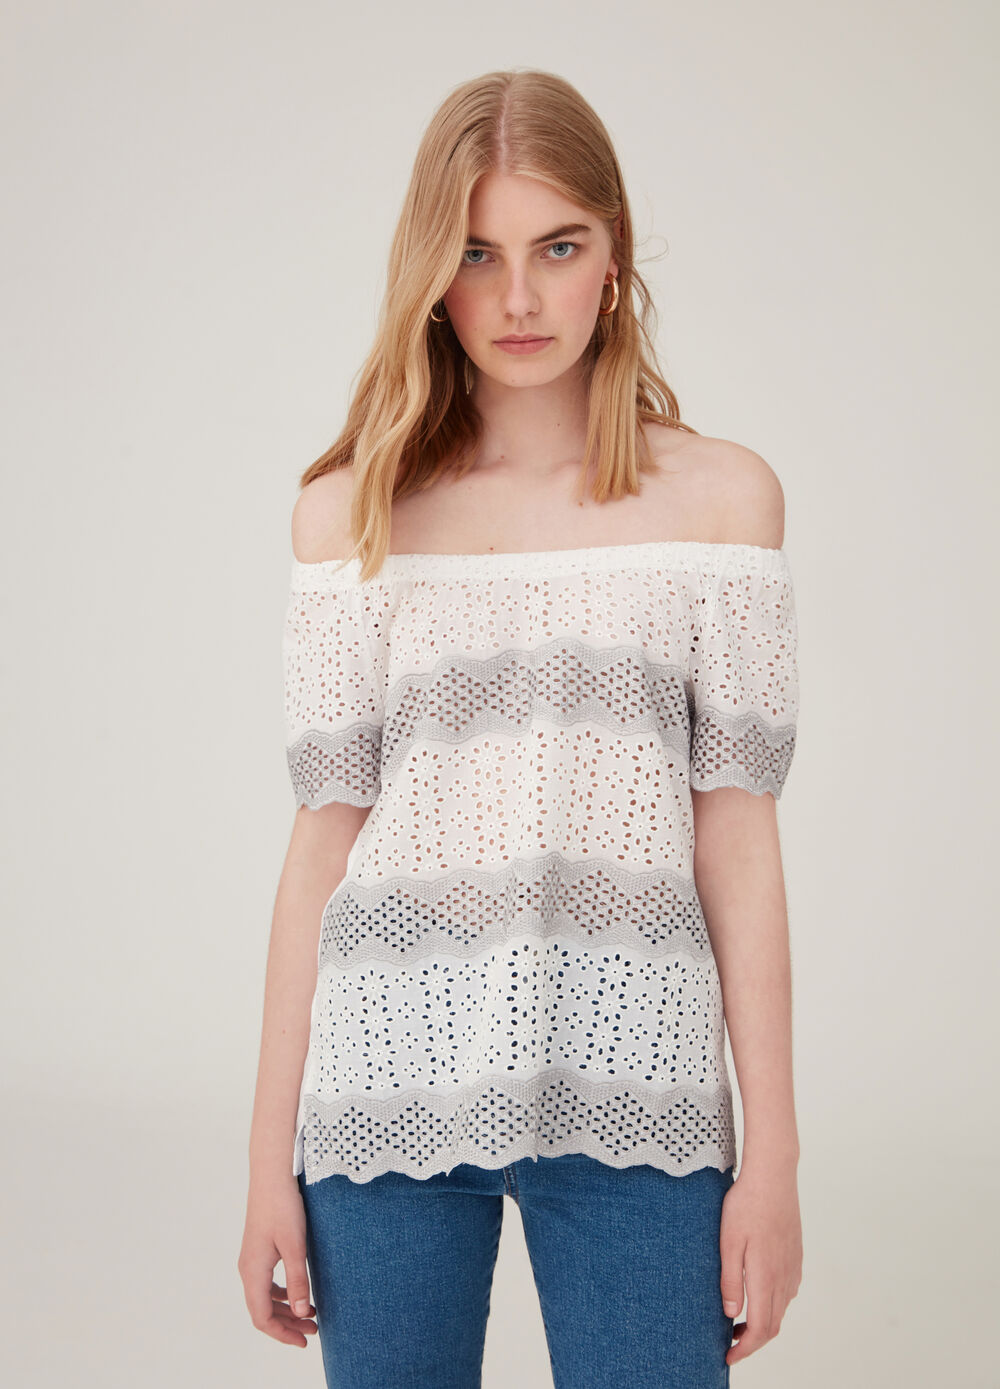 a3b0f75ff158 T-shirt with drop shoulders and openwork weave